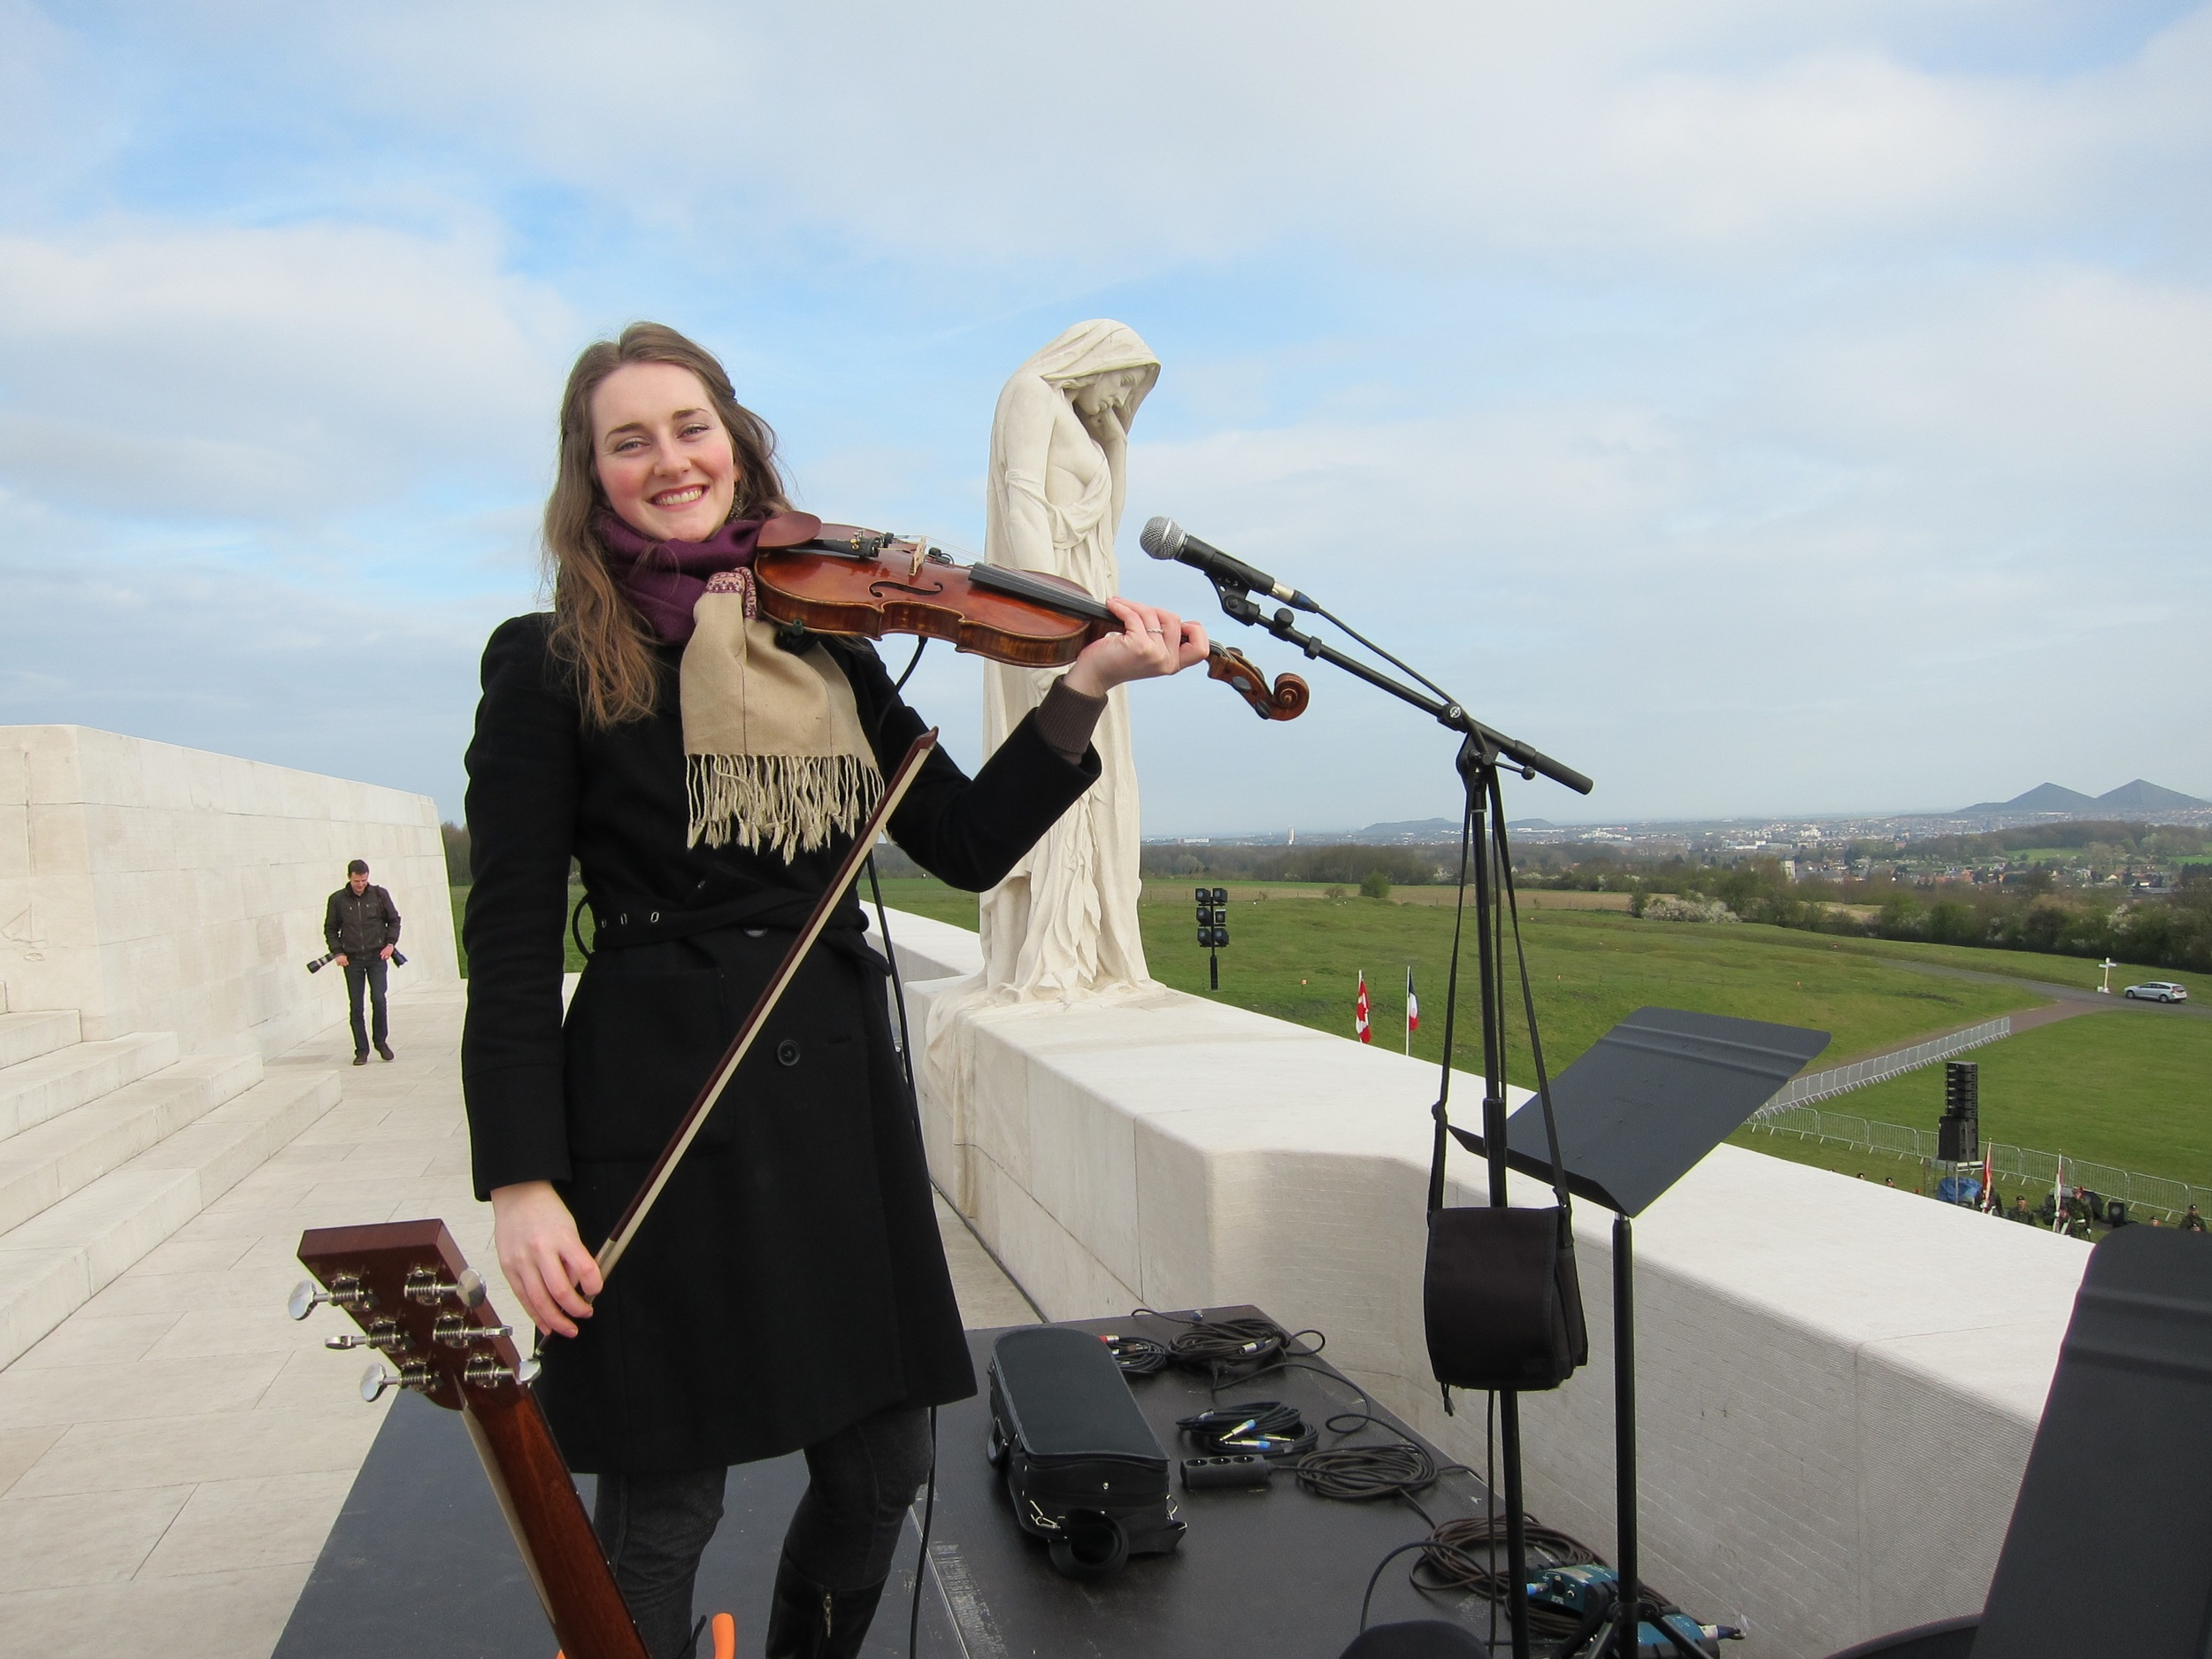 95th Anniversary of Vimy Ridge - Rehearsal